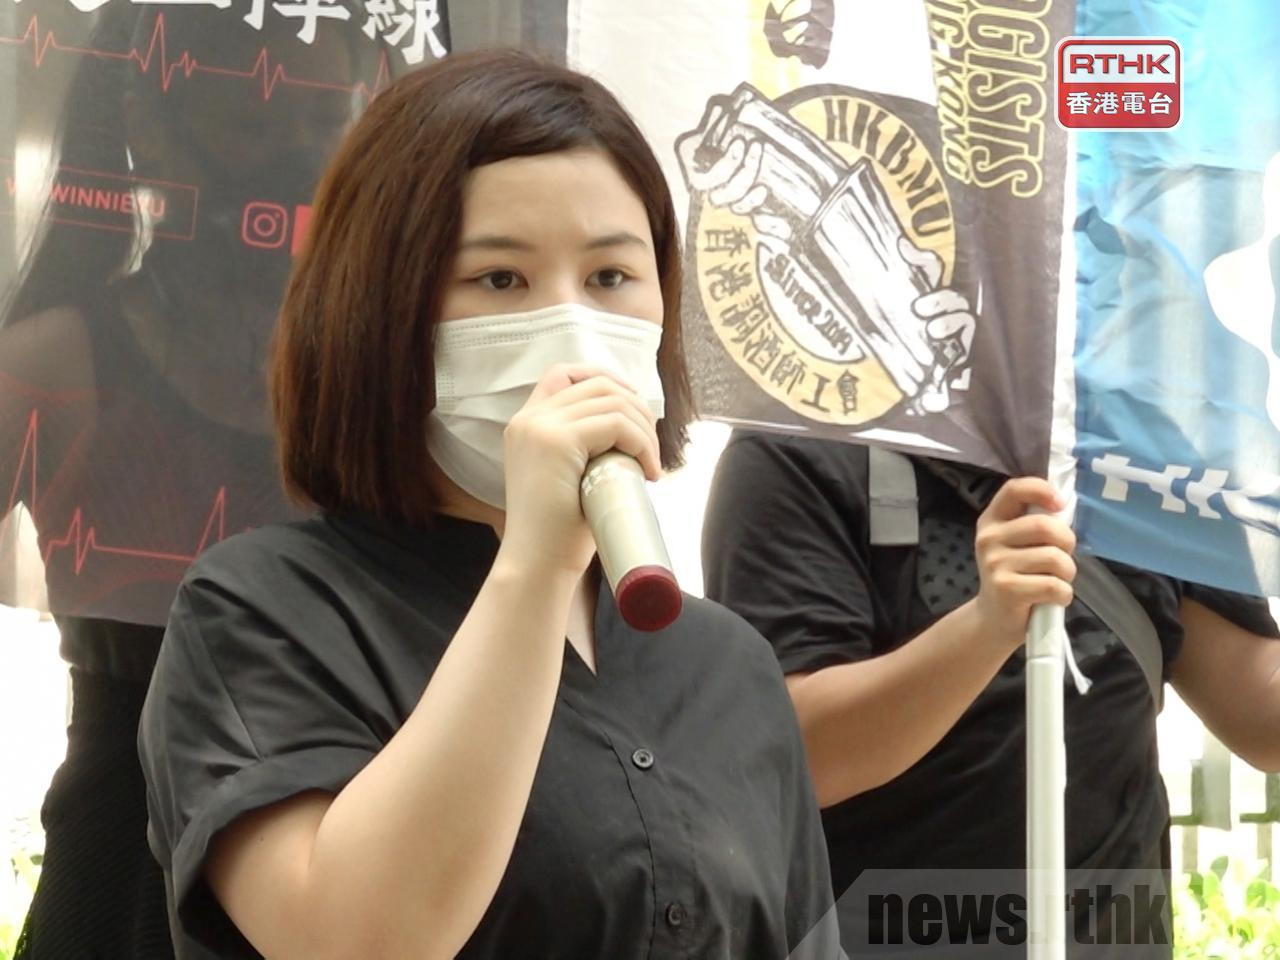 The High Court on Wednesday granted bail to Winnie Yu, one of the 47 pro-democracy figures facing subversion charges over Legco primary polls in 2020. File photo: RTHK